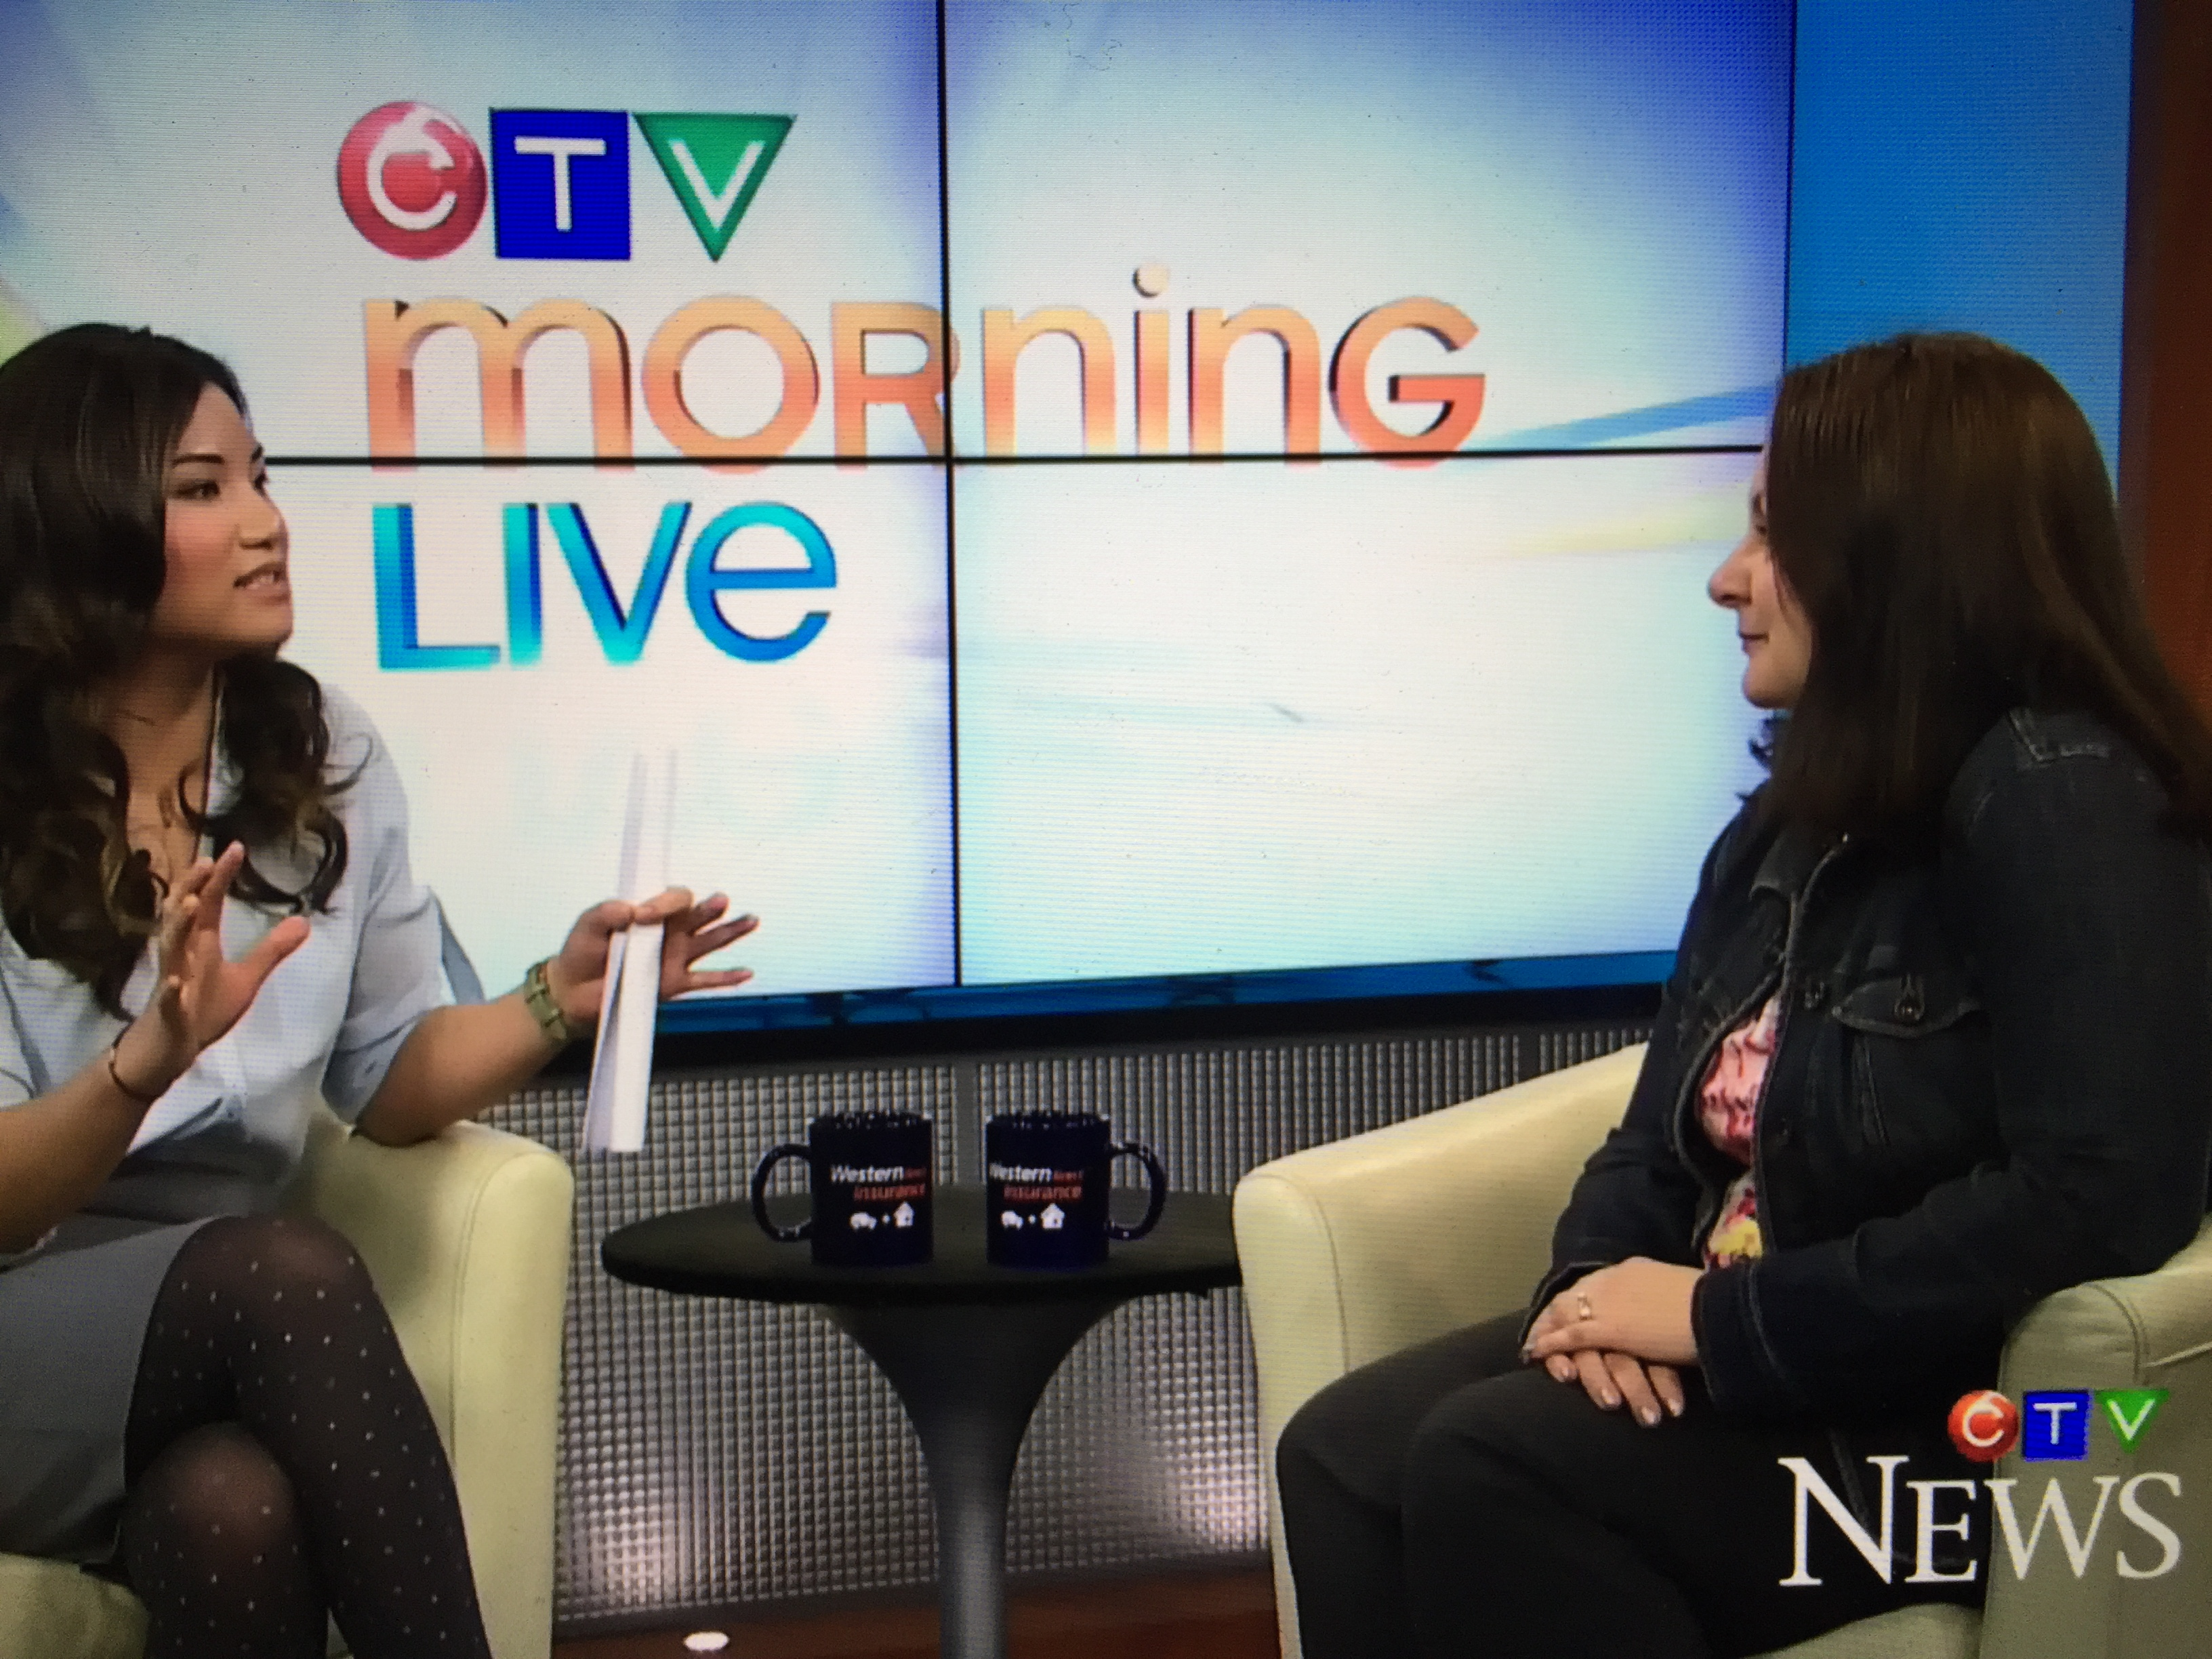 CTV_Morning_Live_Wardrobe